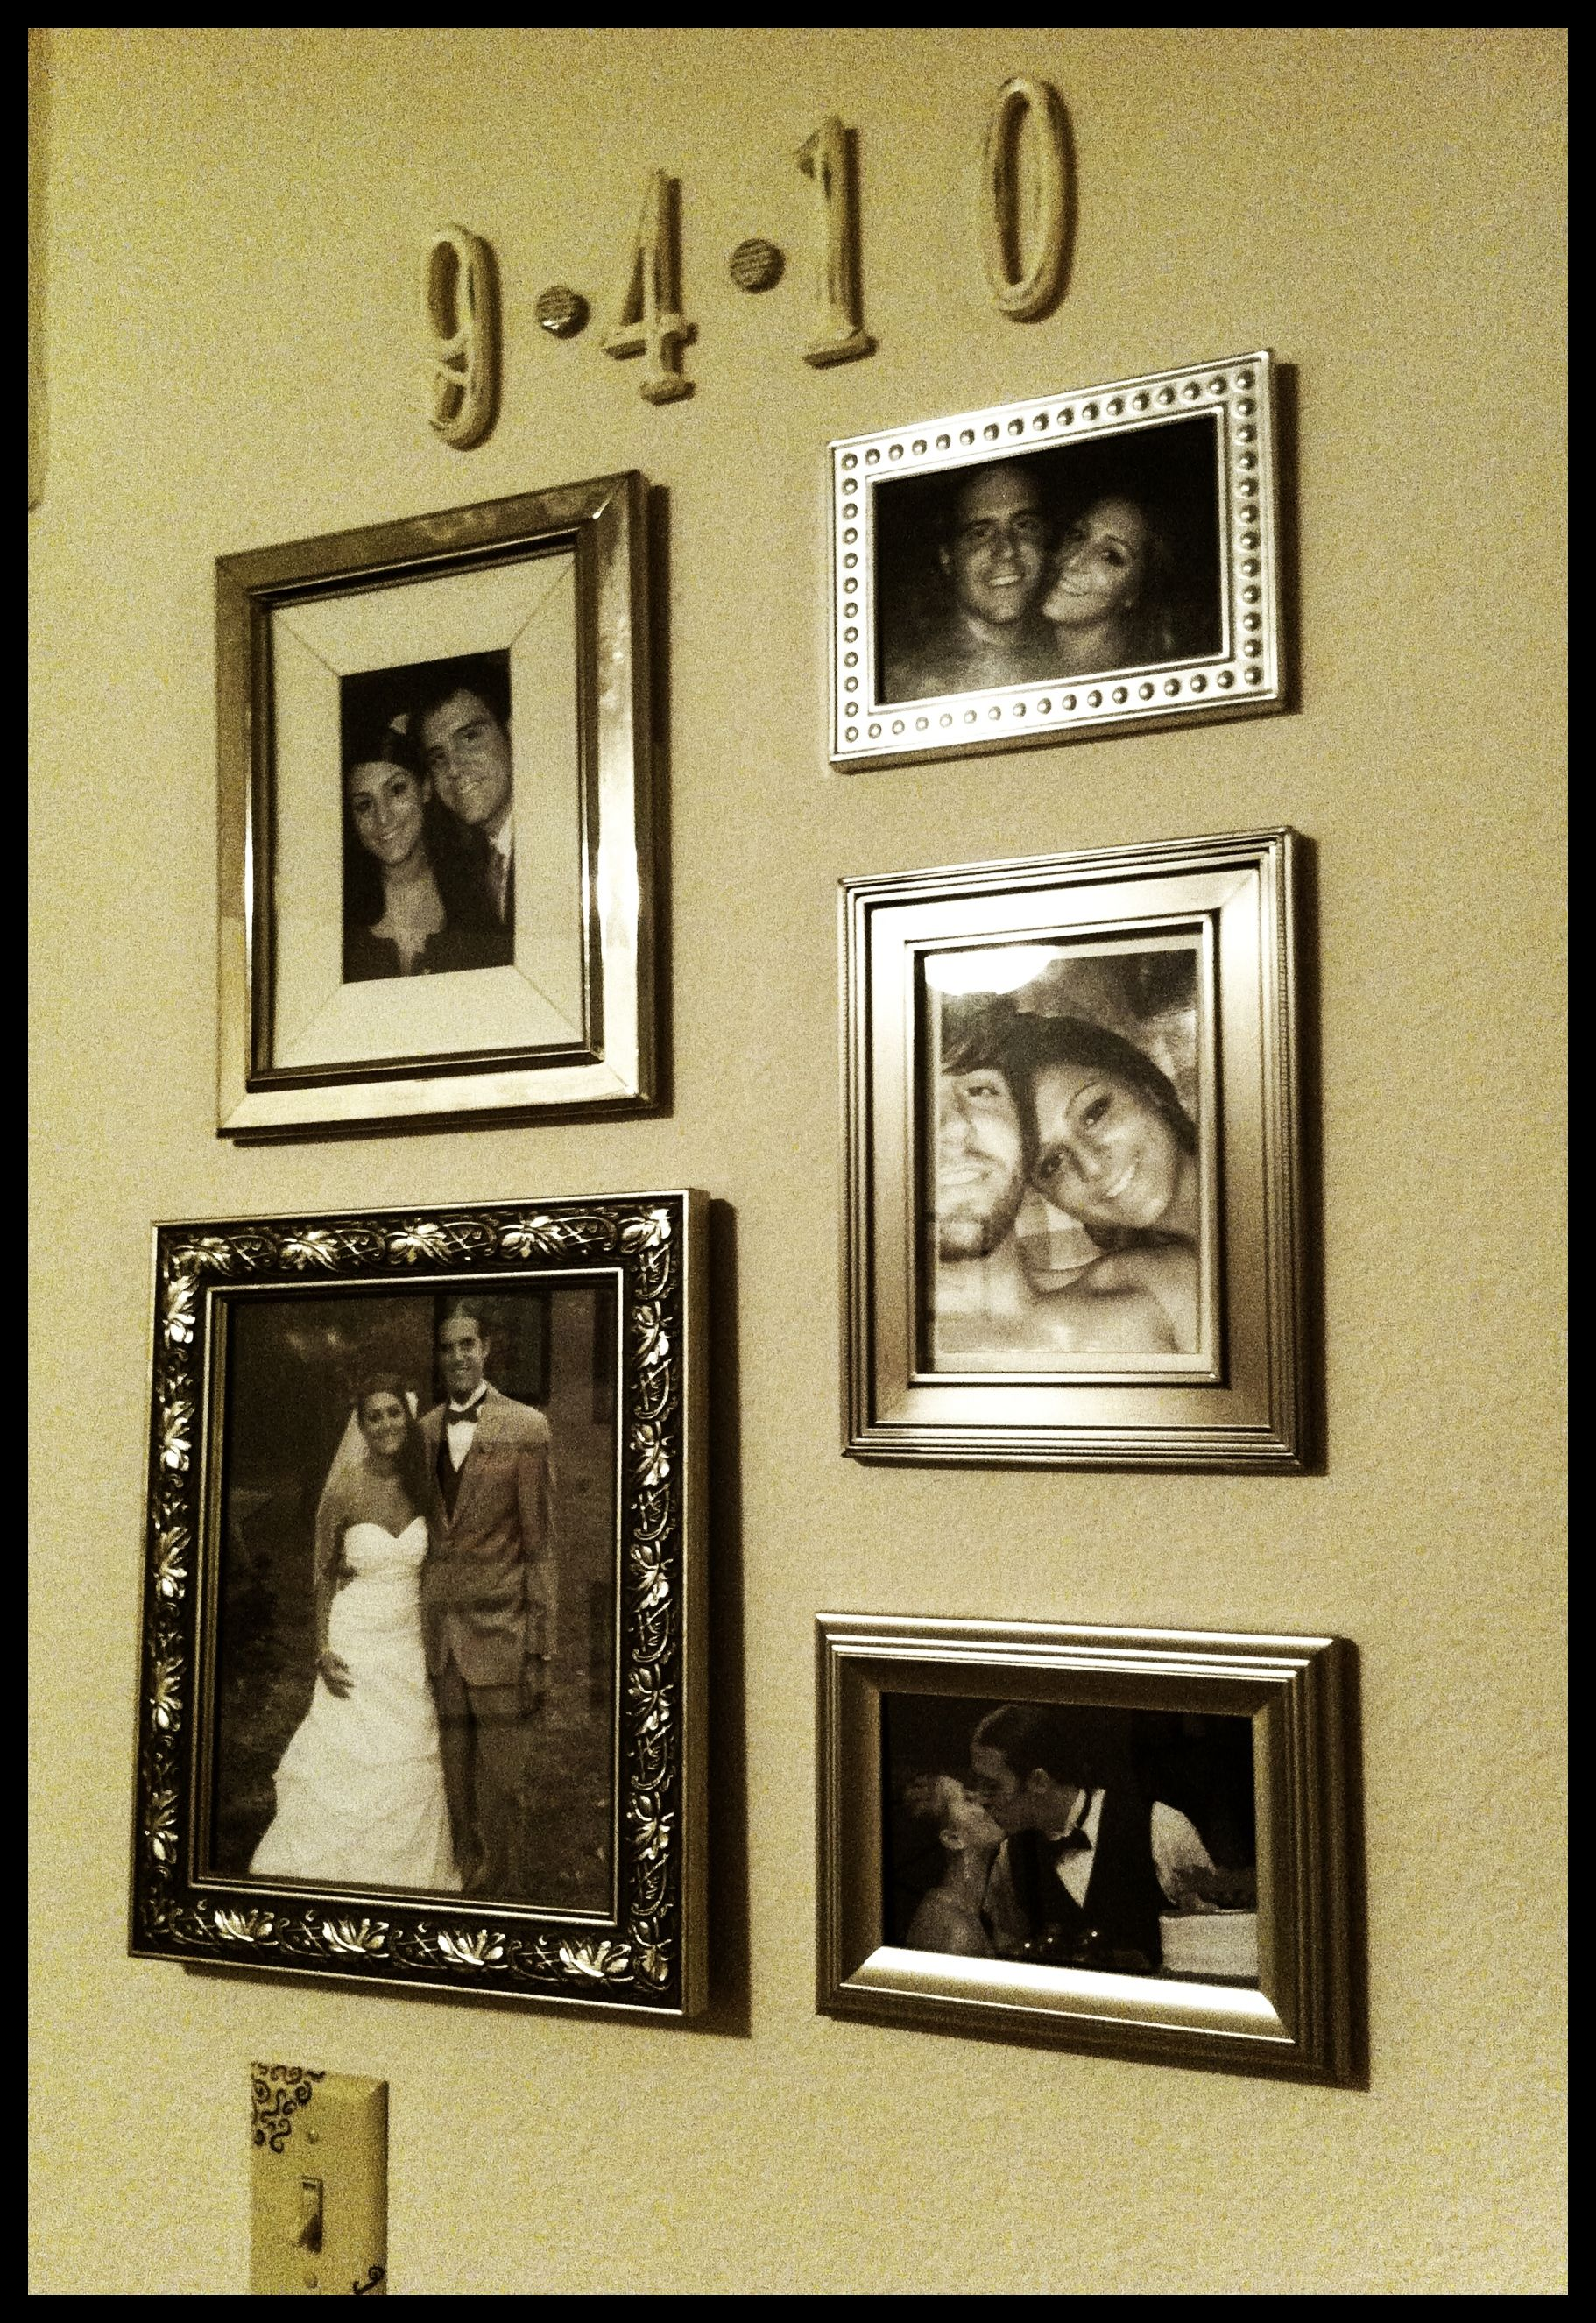 Sized Silver Frames With Black & White